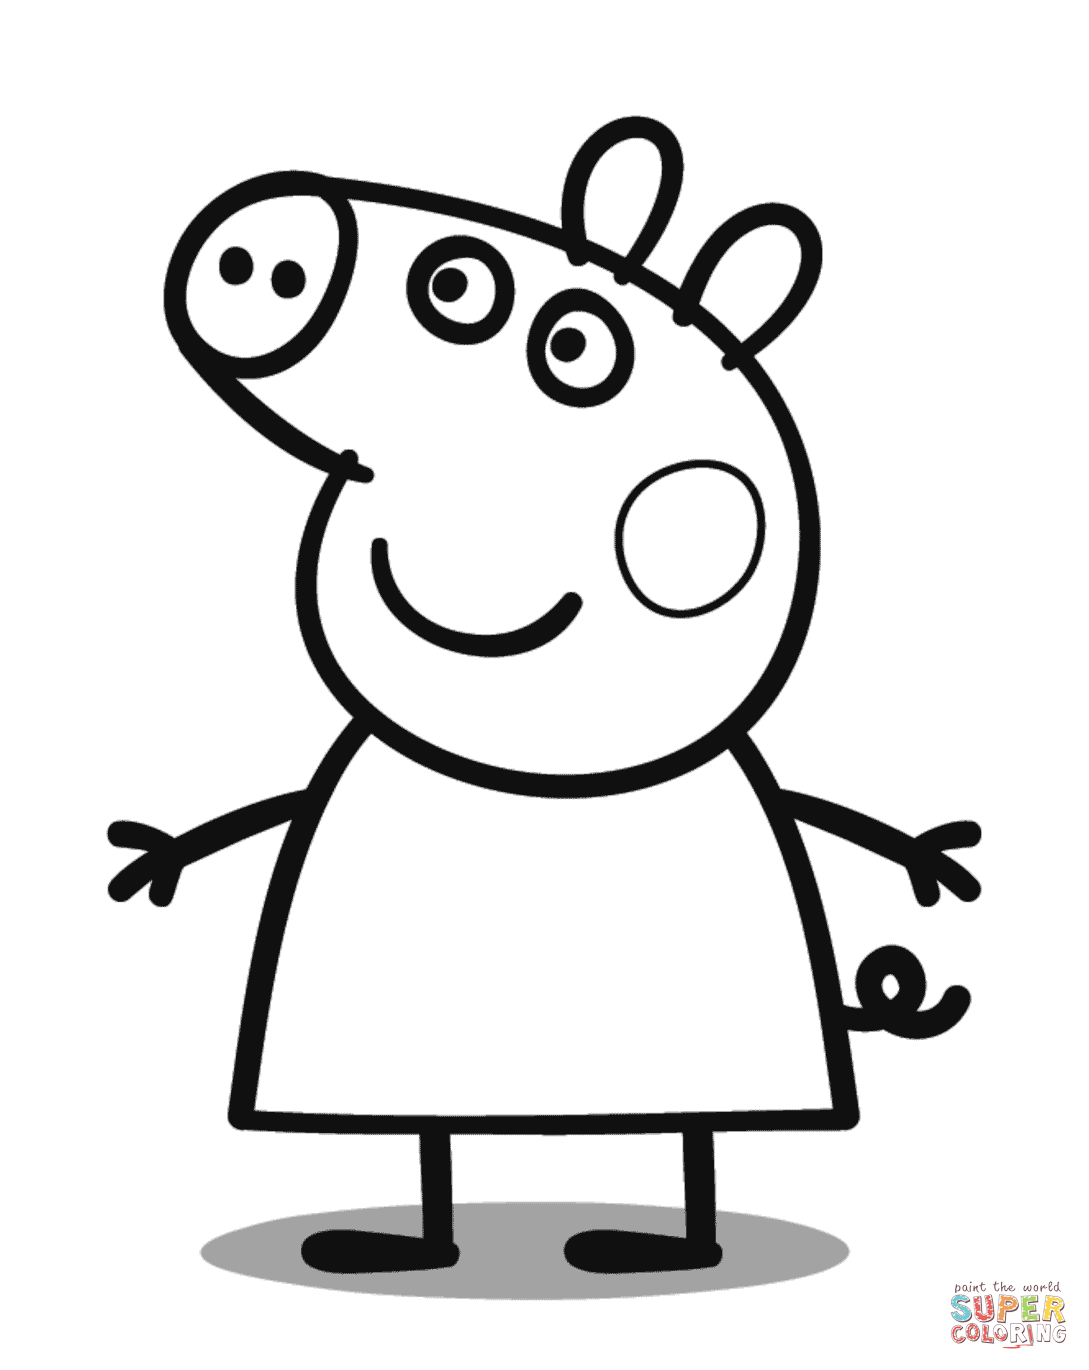 peppa pig black and white 30 printable peppa pig coloring pages you wont find and peppa black pig white